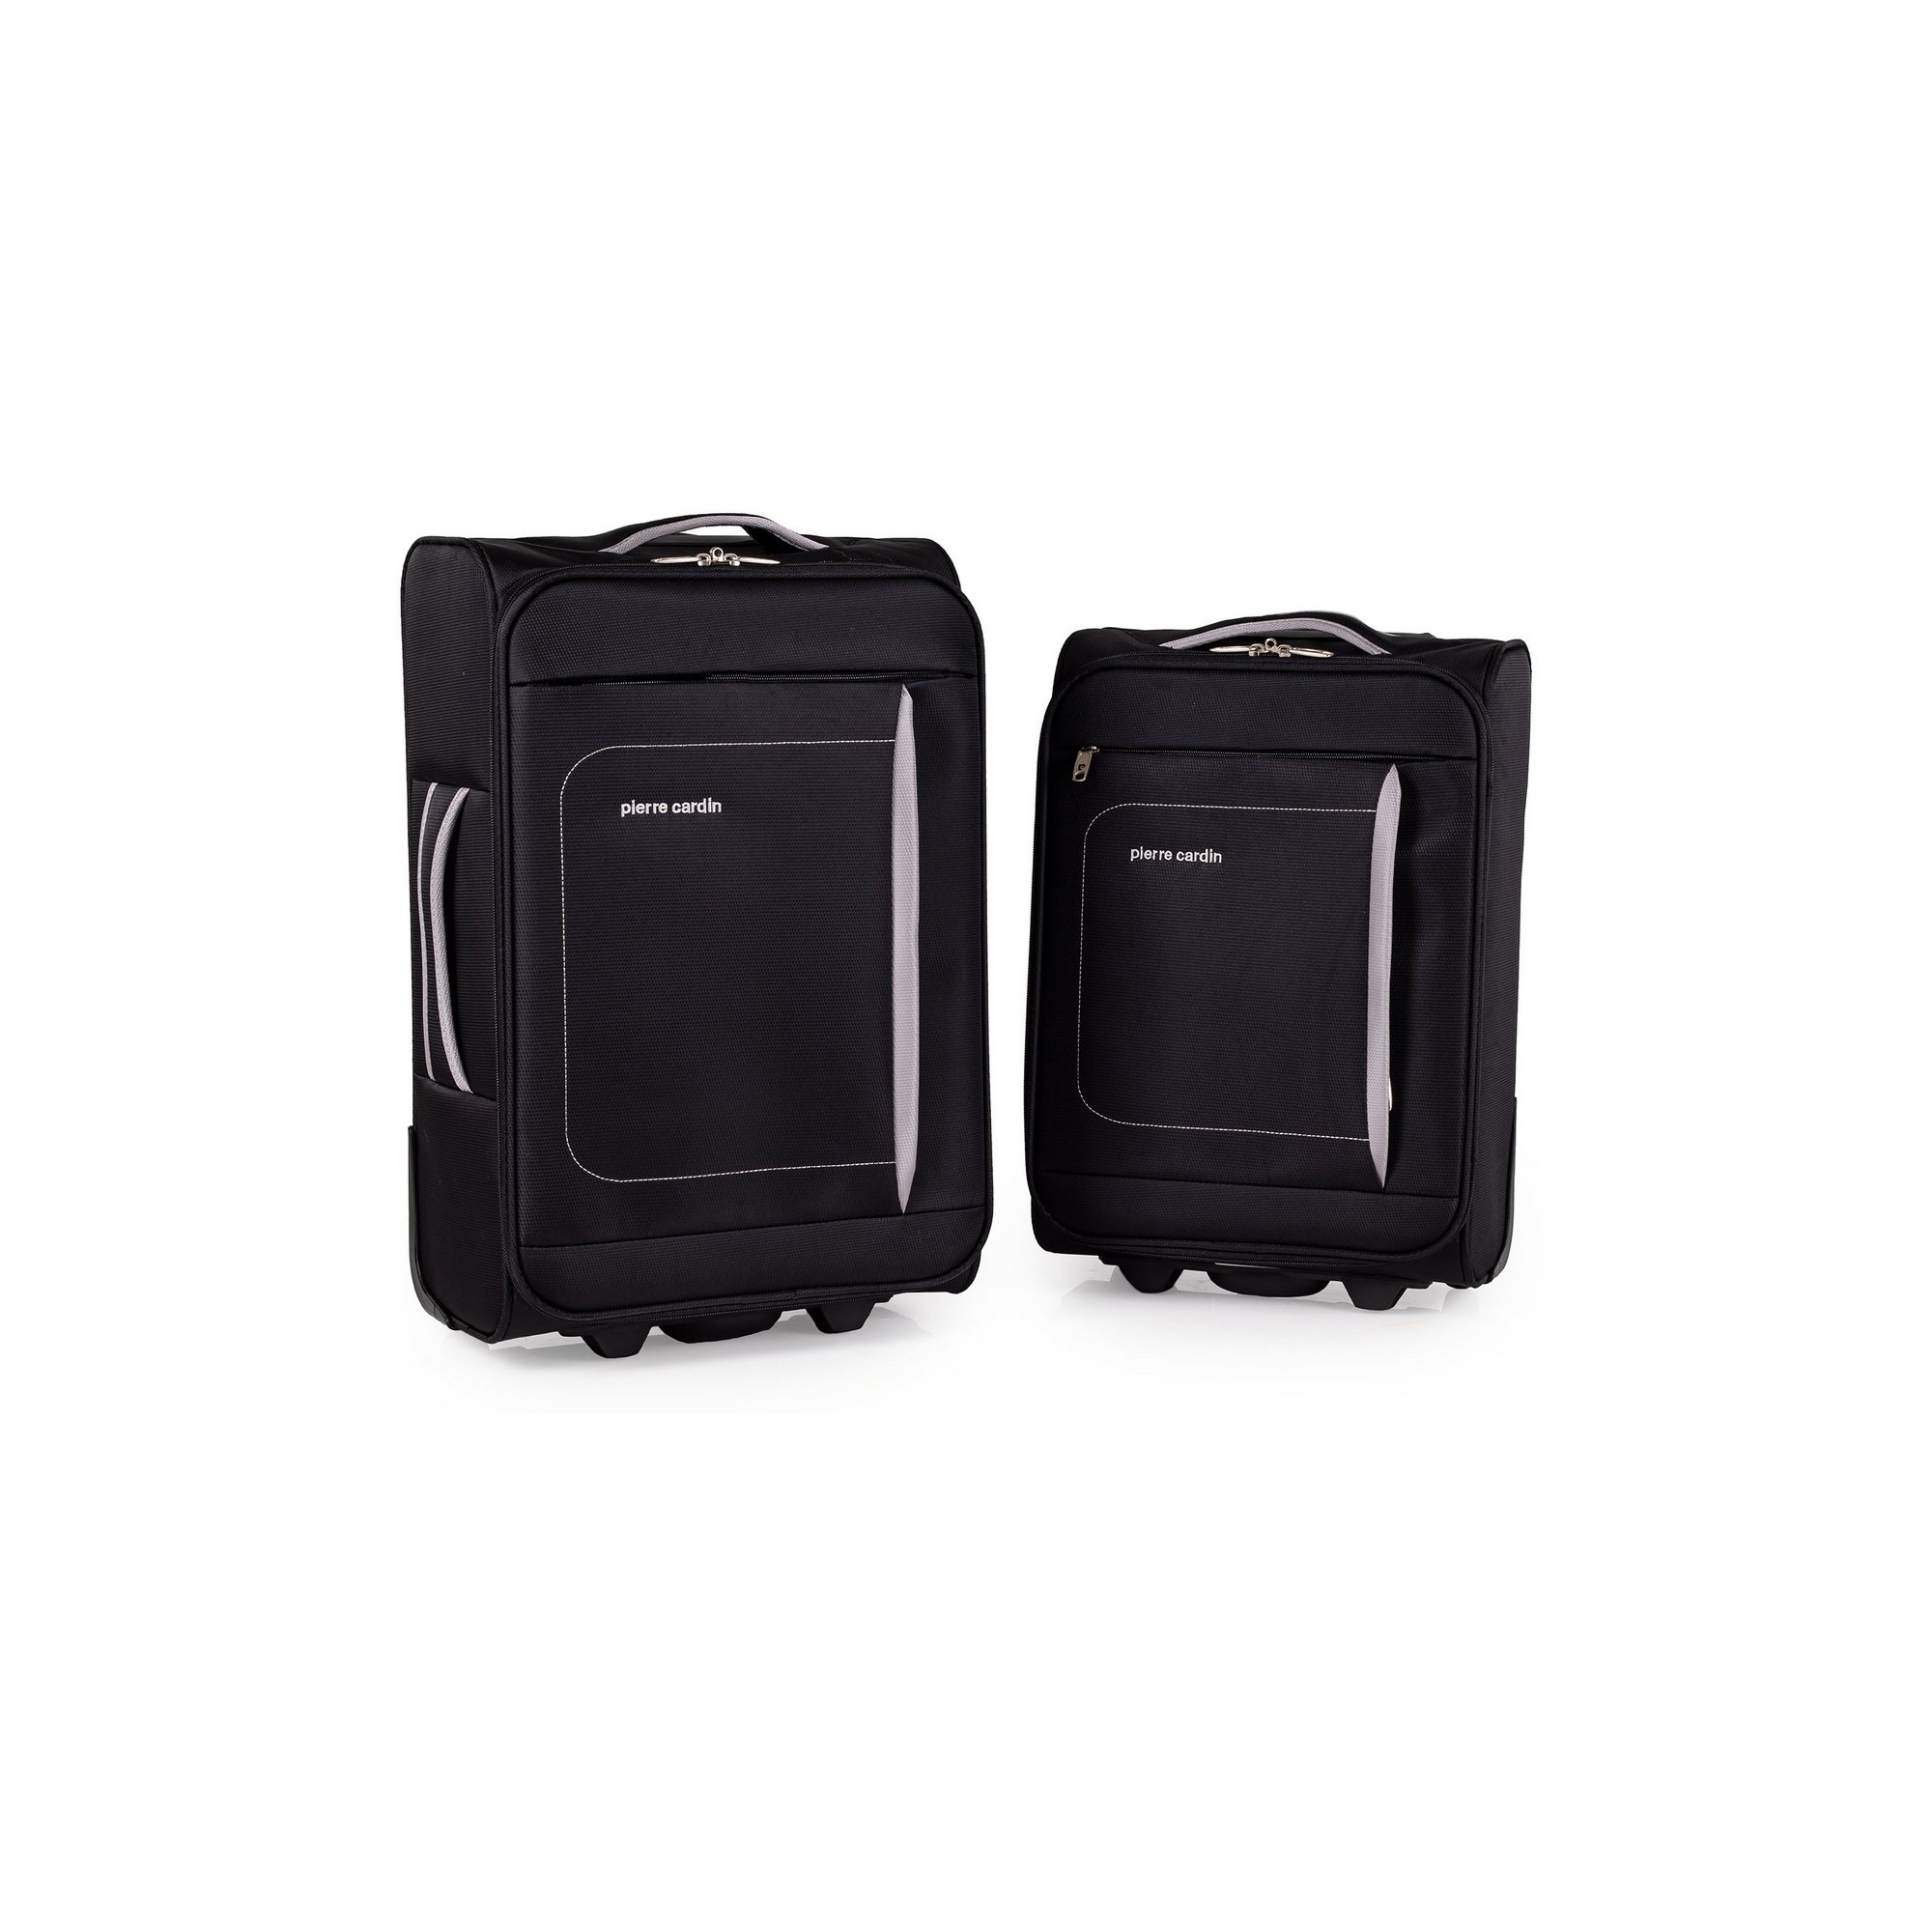 Image of Pierre Cardin 2-Piece Lightweight Luggage Set